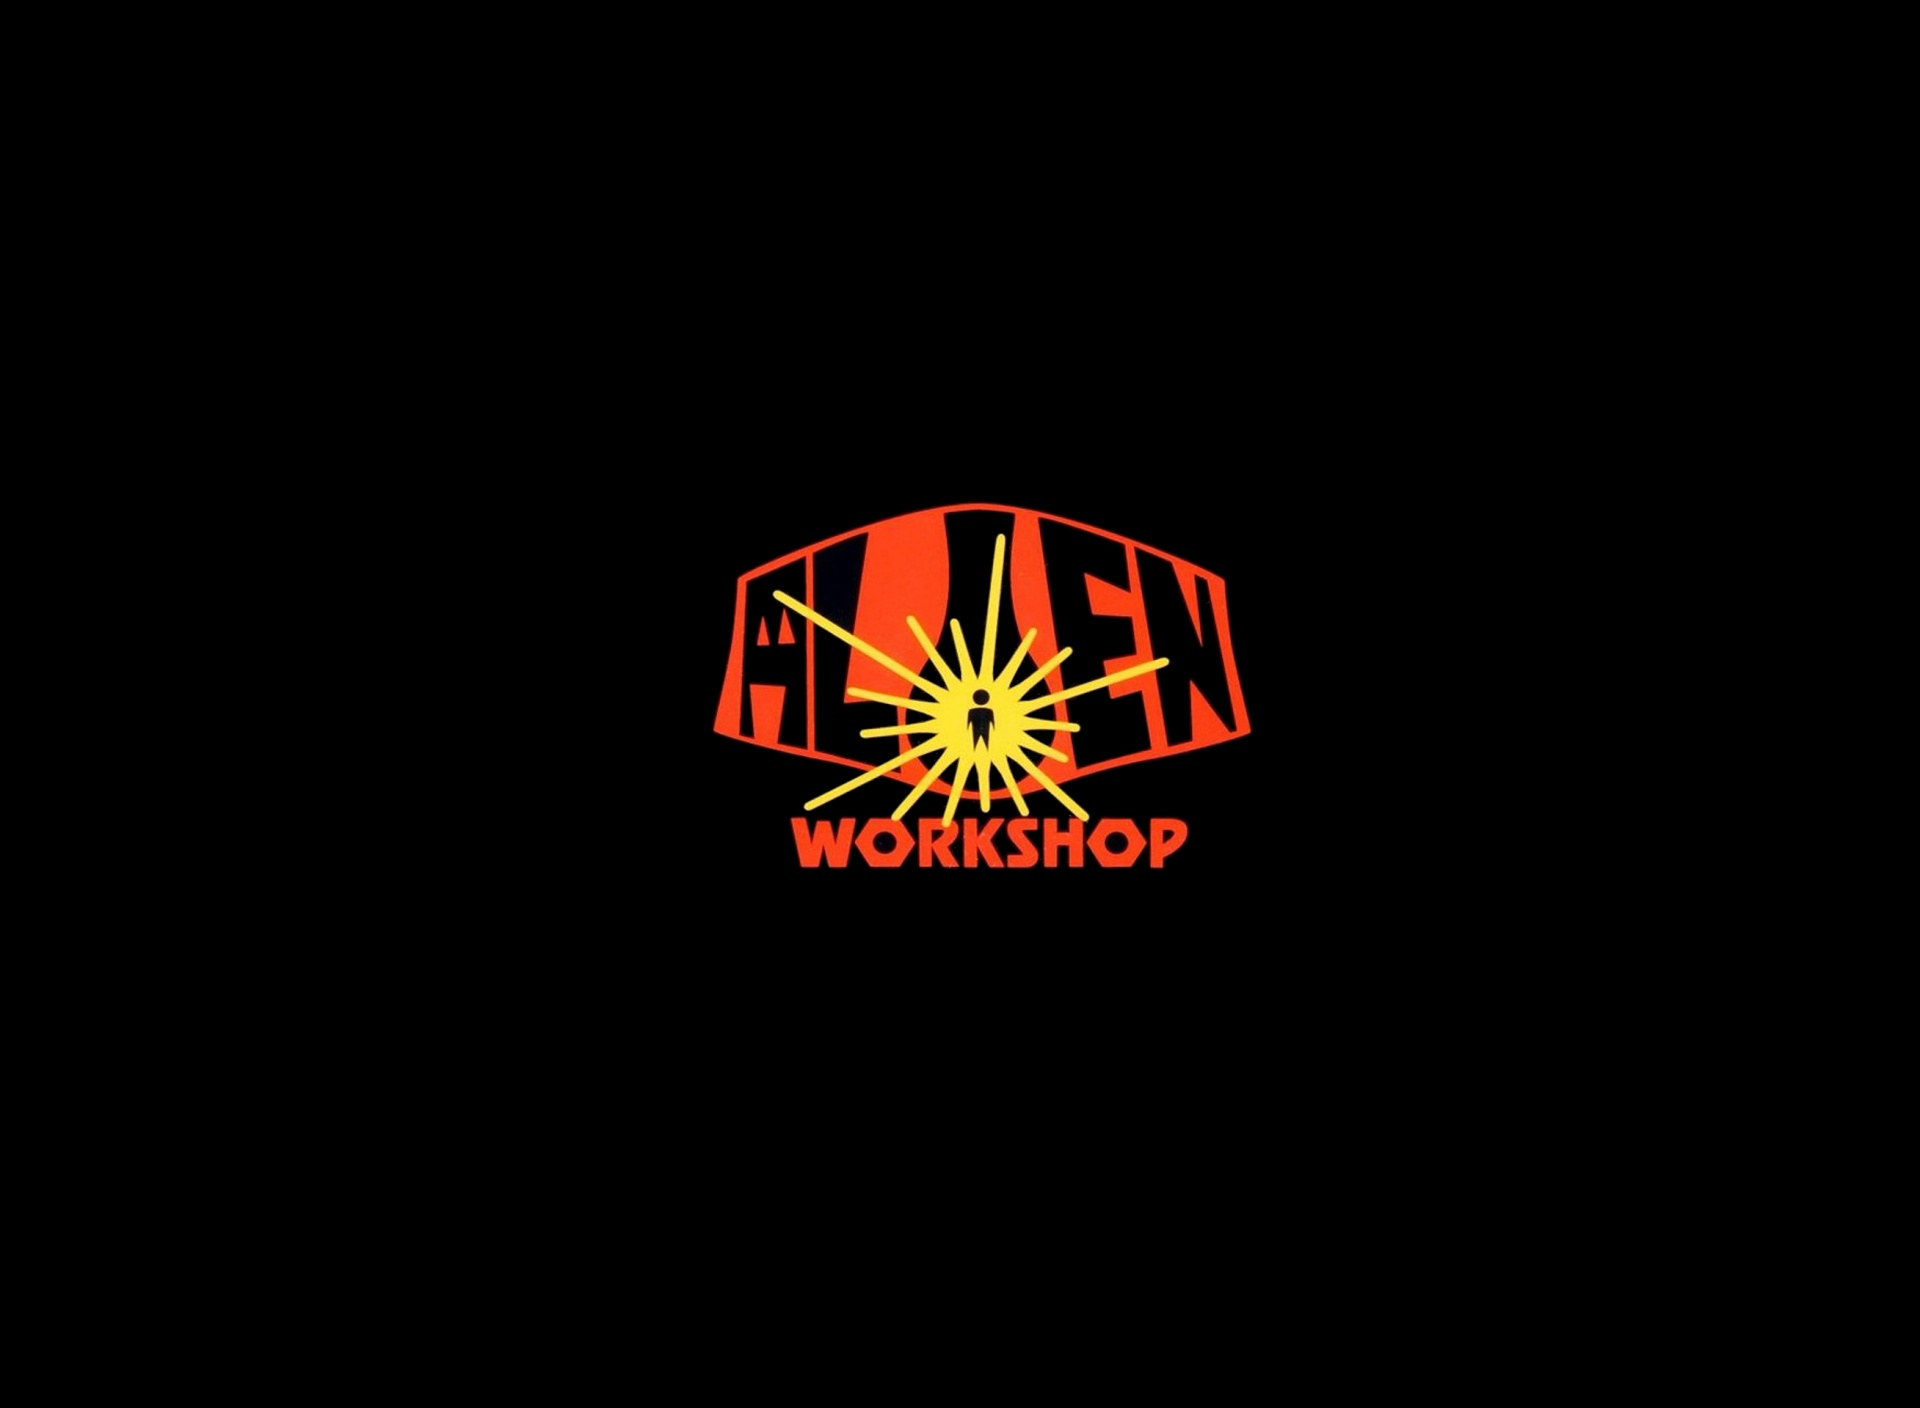 free 1920x1408 alien workshop 1920x1408 wallpaper screensaver preview 1920x1408